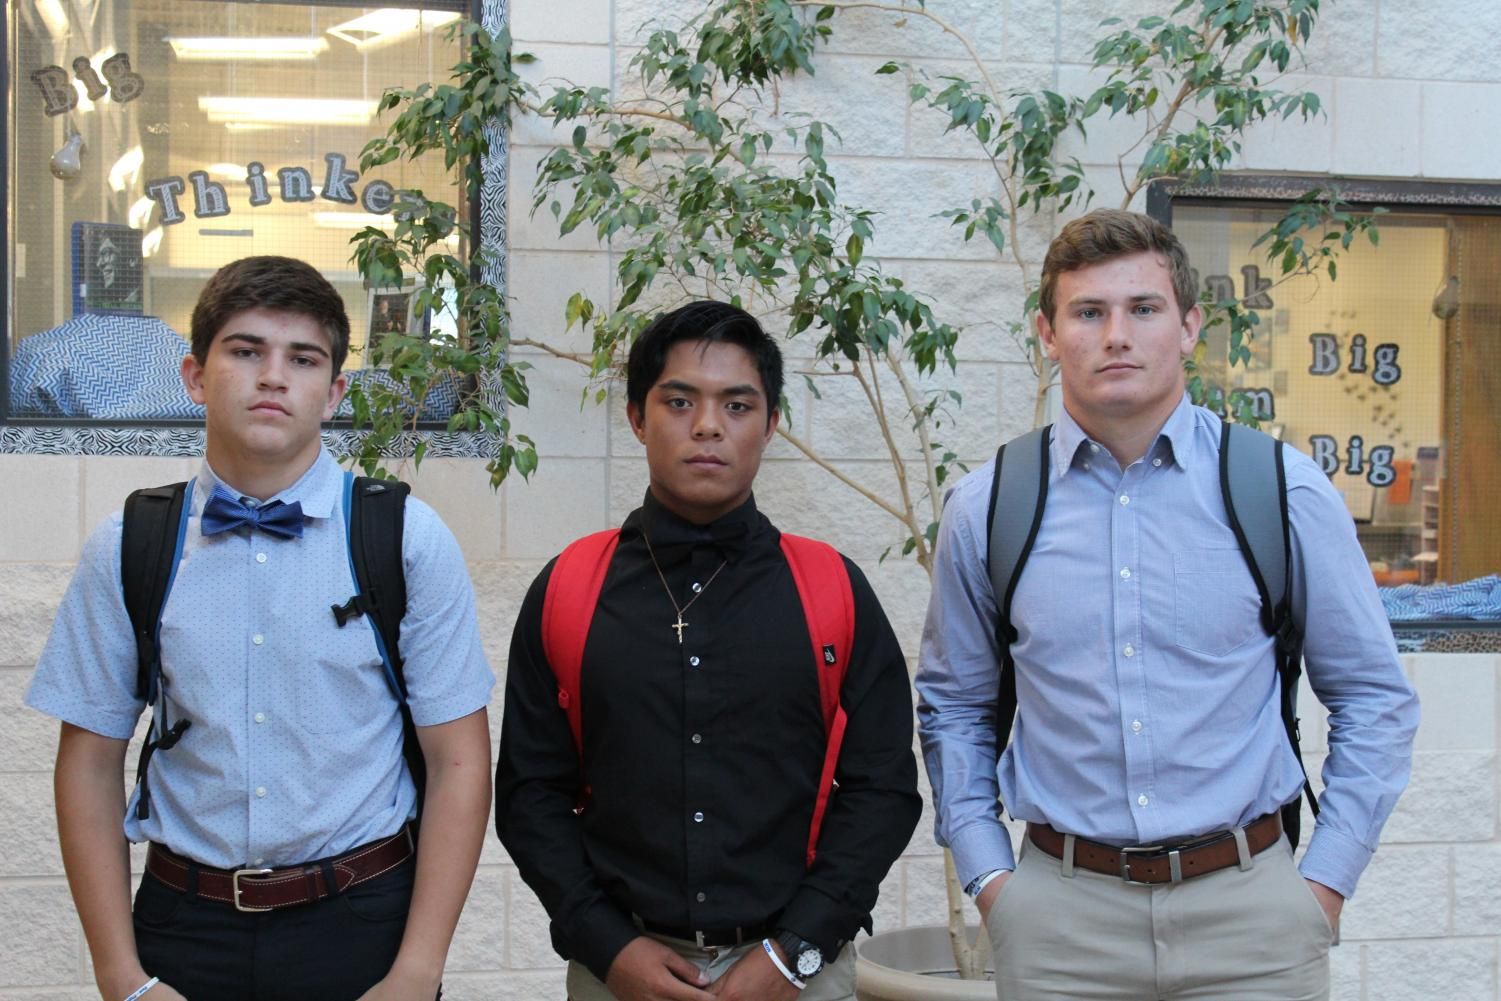 Sophomore Dax Brookerson, senior Kyle Arriola and sophomore Case Brister stop for a quick picture after 8th period as they leave for the first varsity football game of the season in Joshua.